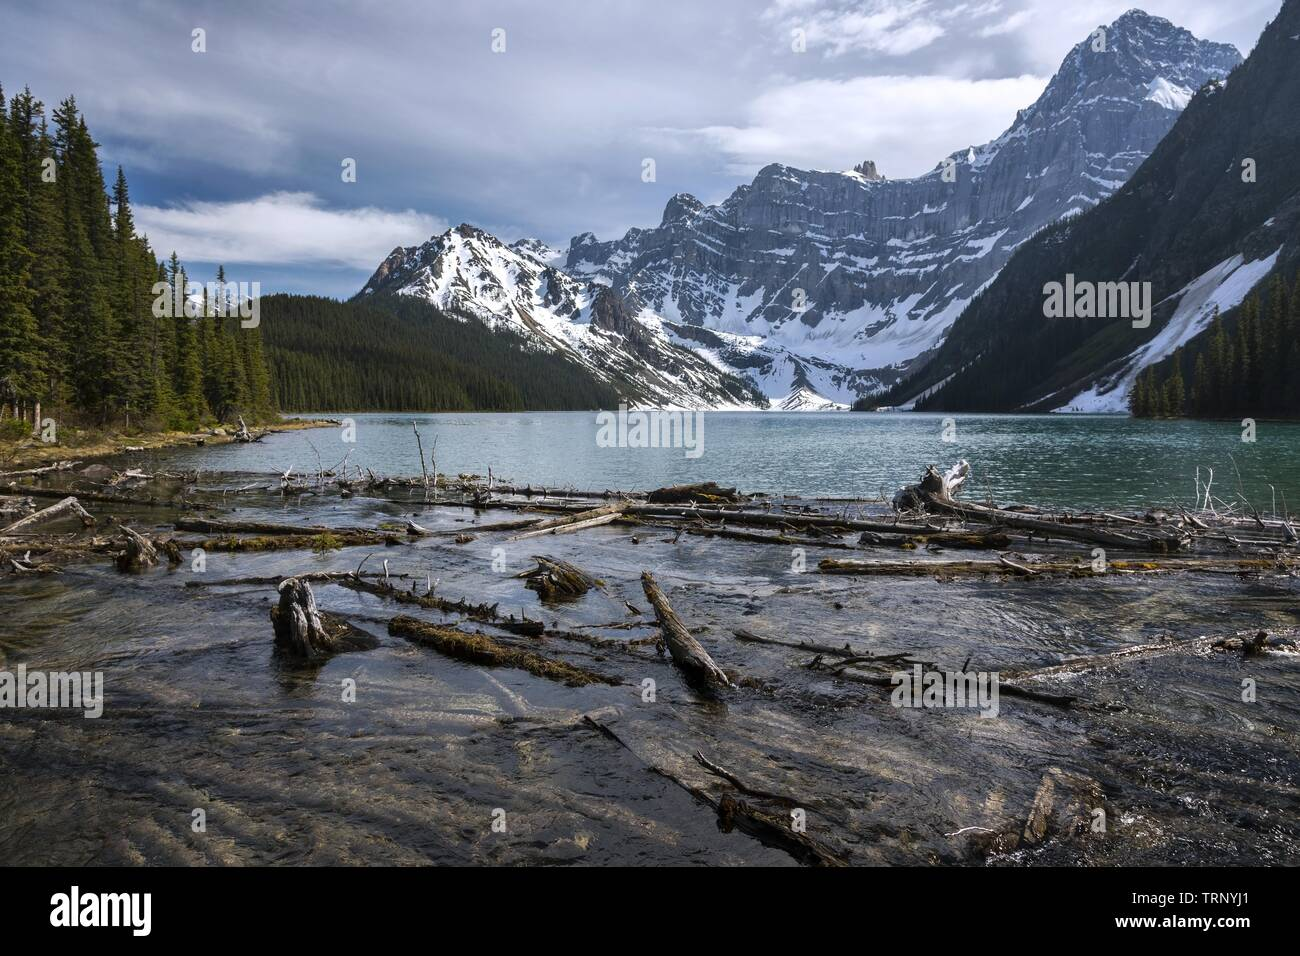 Scattered Driftwood and Scenic Landscape View of Chephren Lake and Rugged Mountain Peaks on Hiking Trail near Icefields Parkway in Banff National Park Stock Photo